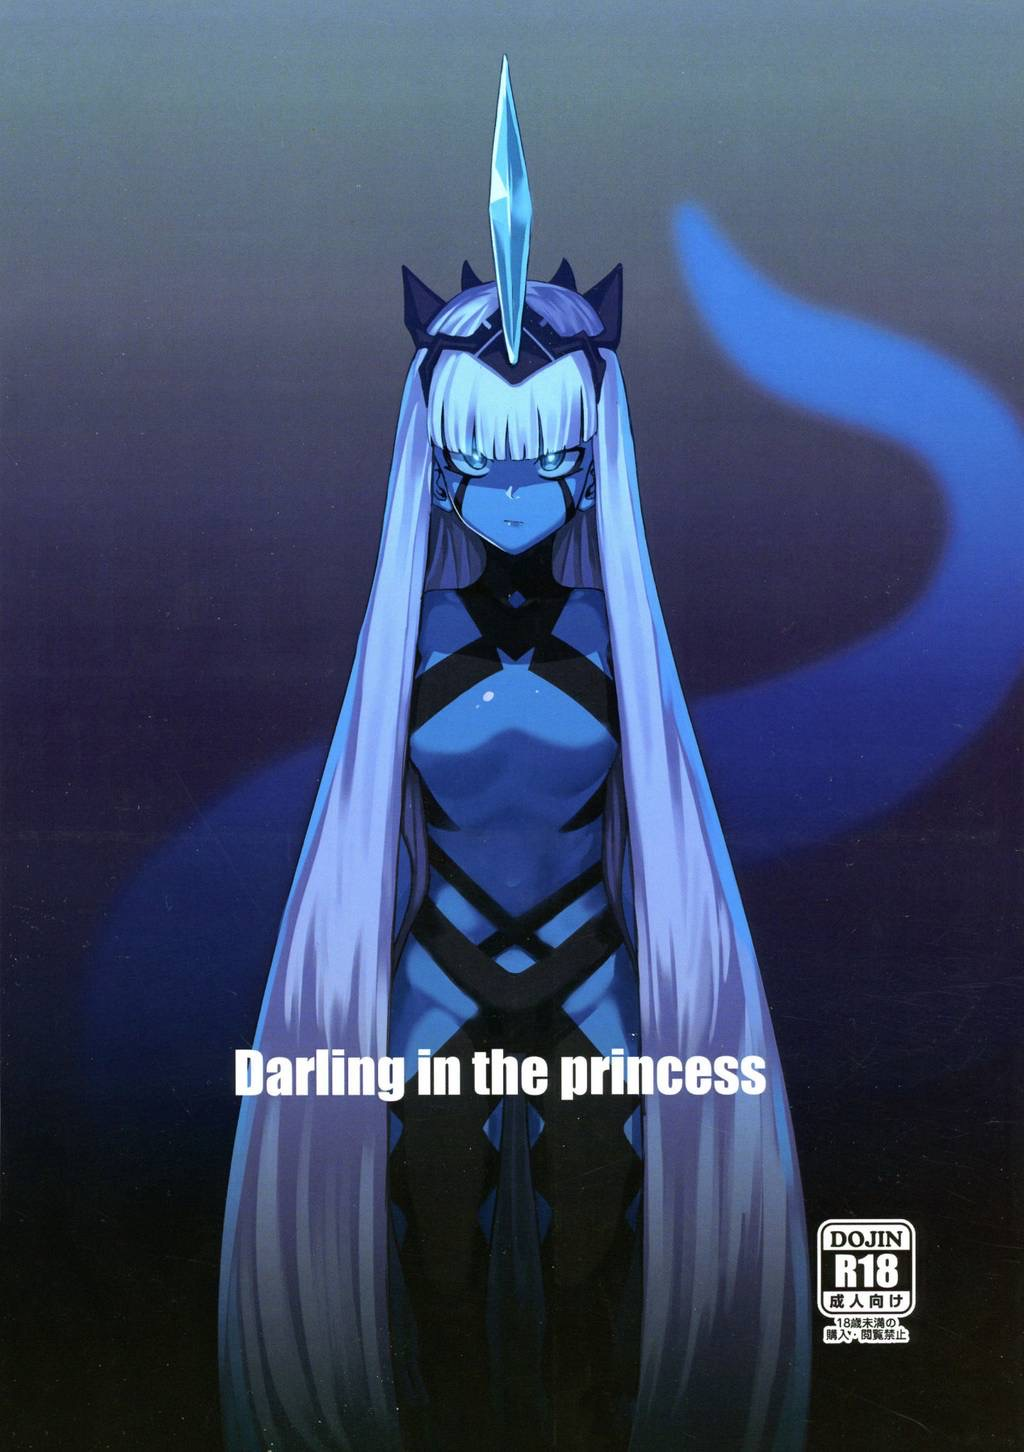 Darling-in-the-Franxx-Anime-Zero-Two-Princesses-Latex-Yoga-Pants-Creature-Cuties-Tail-horns-Sharp-teeth-fangs-Straight-Sex-Cock-sucking-rides-dick-cum-inside-impregnation-Darling-in-the-Princess